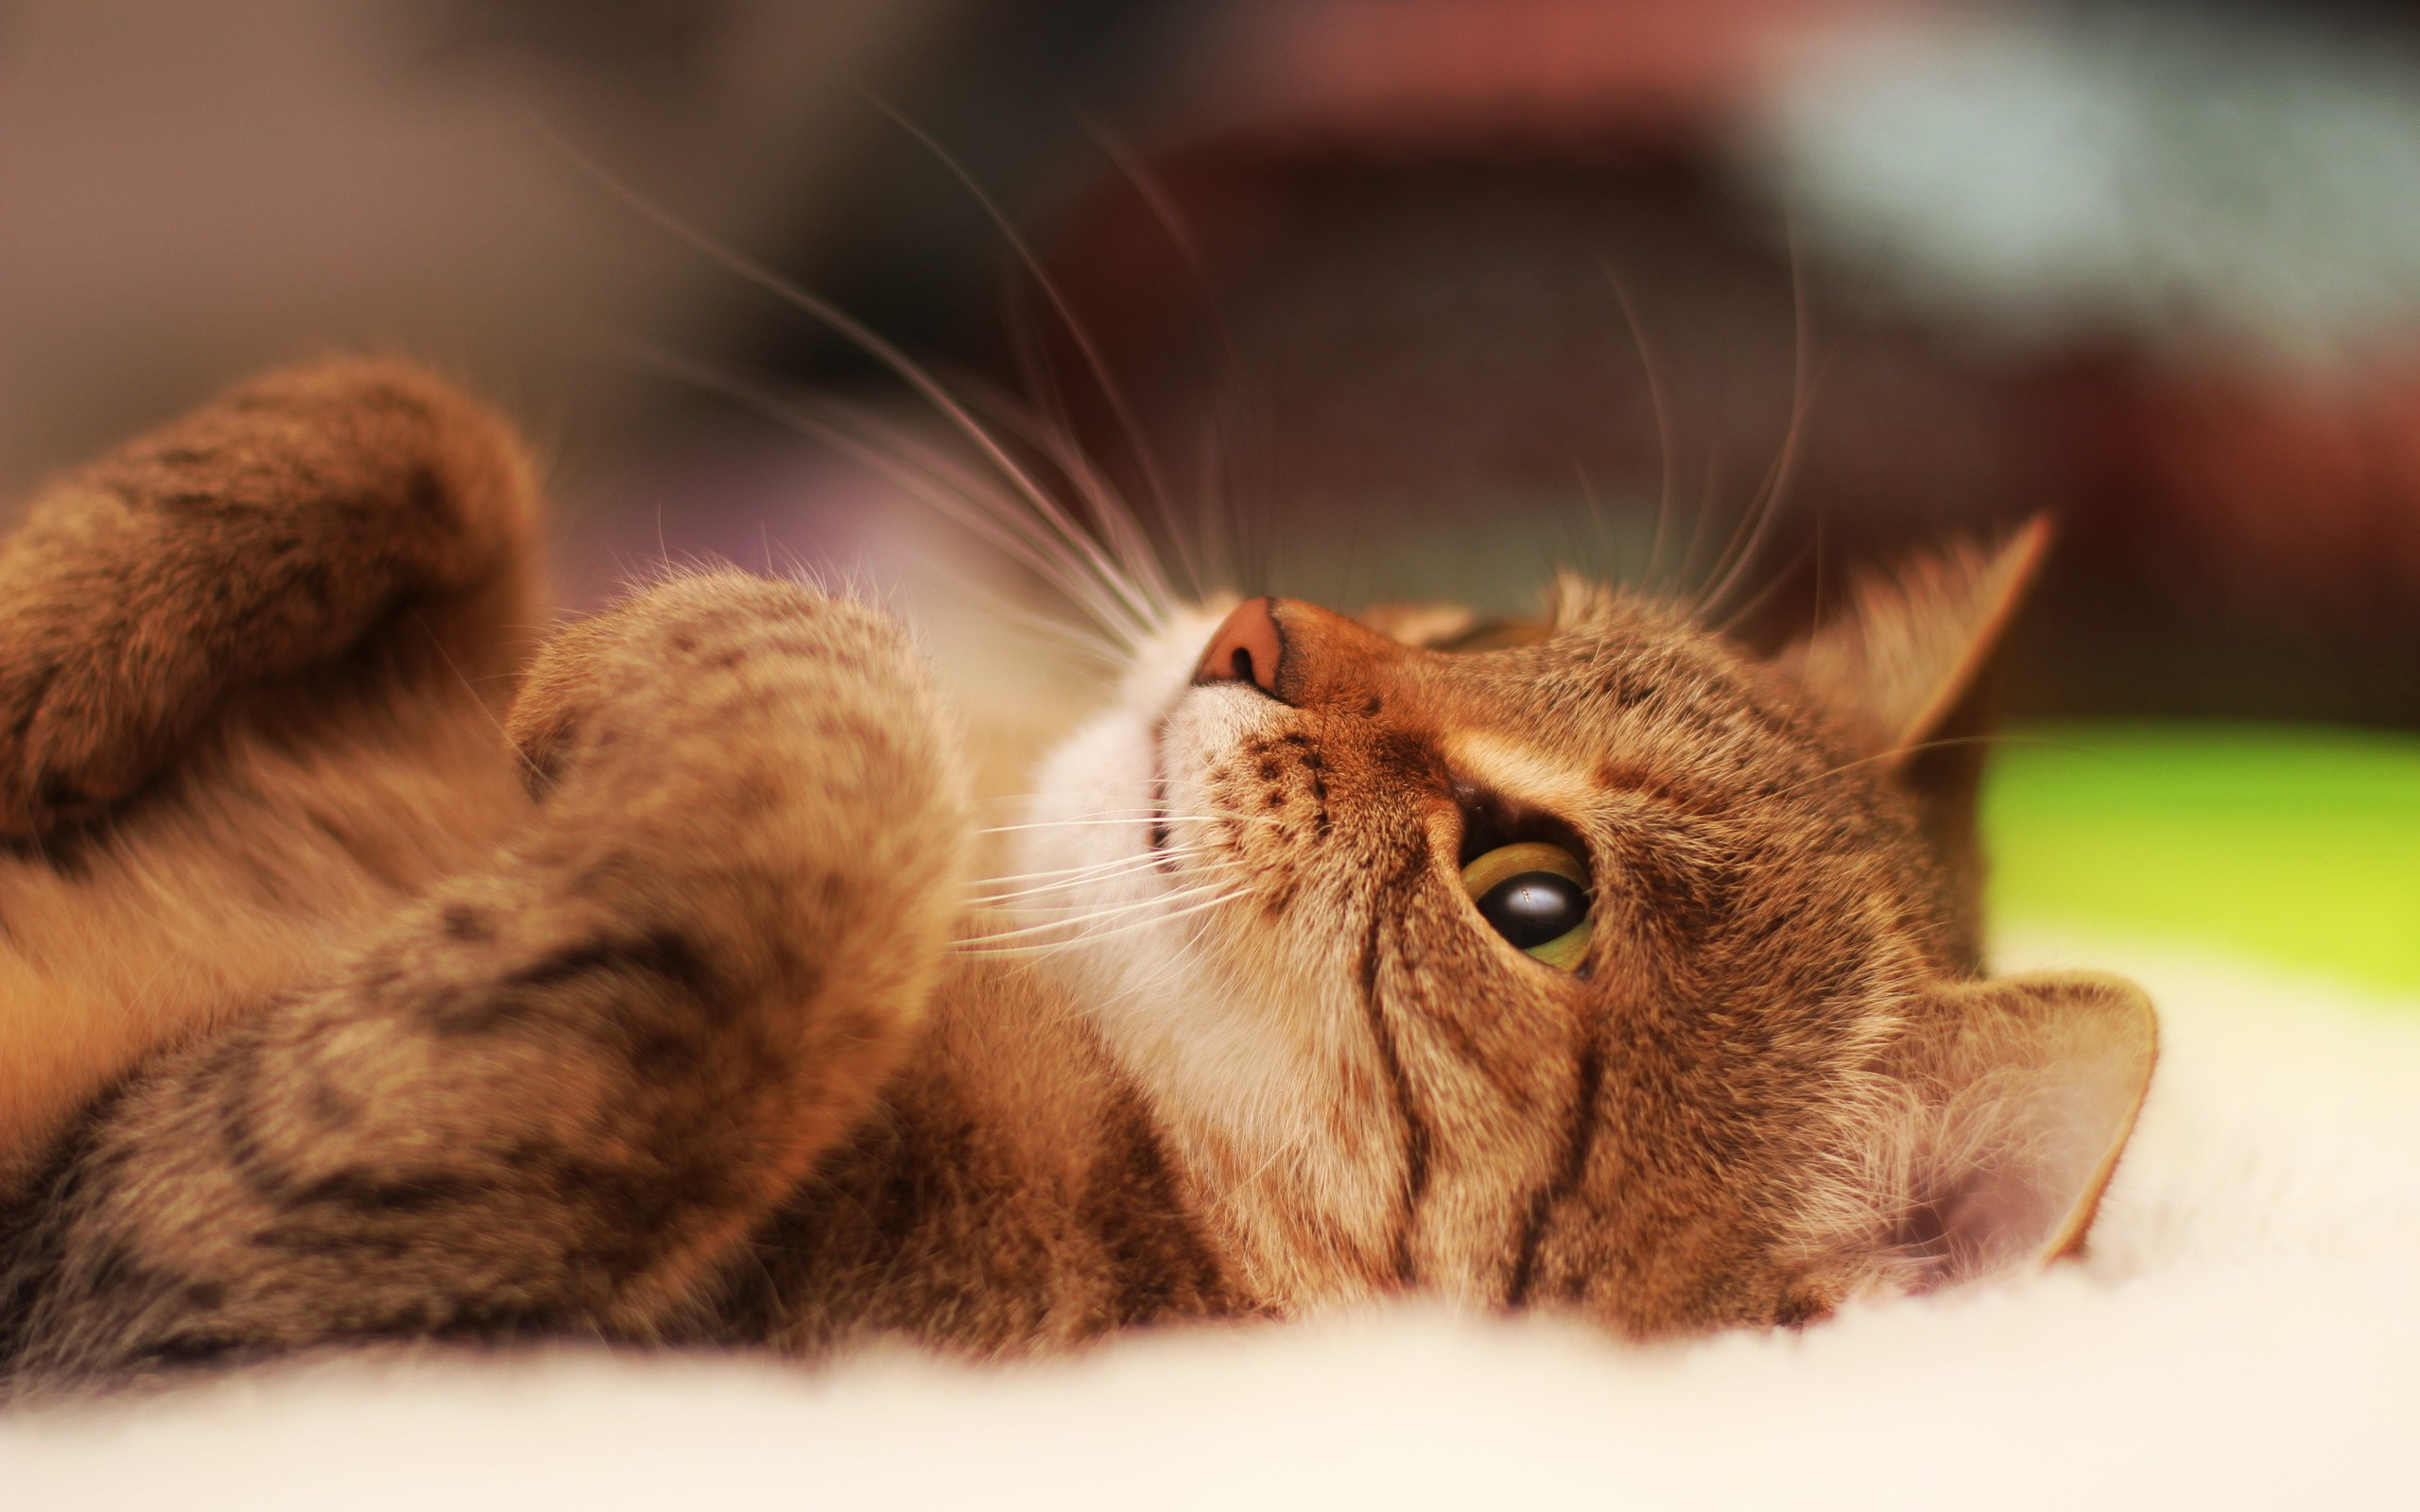 Cute kitty hd